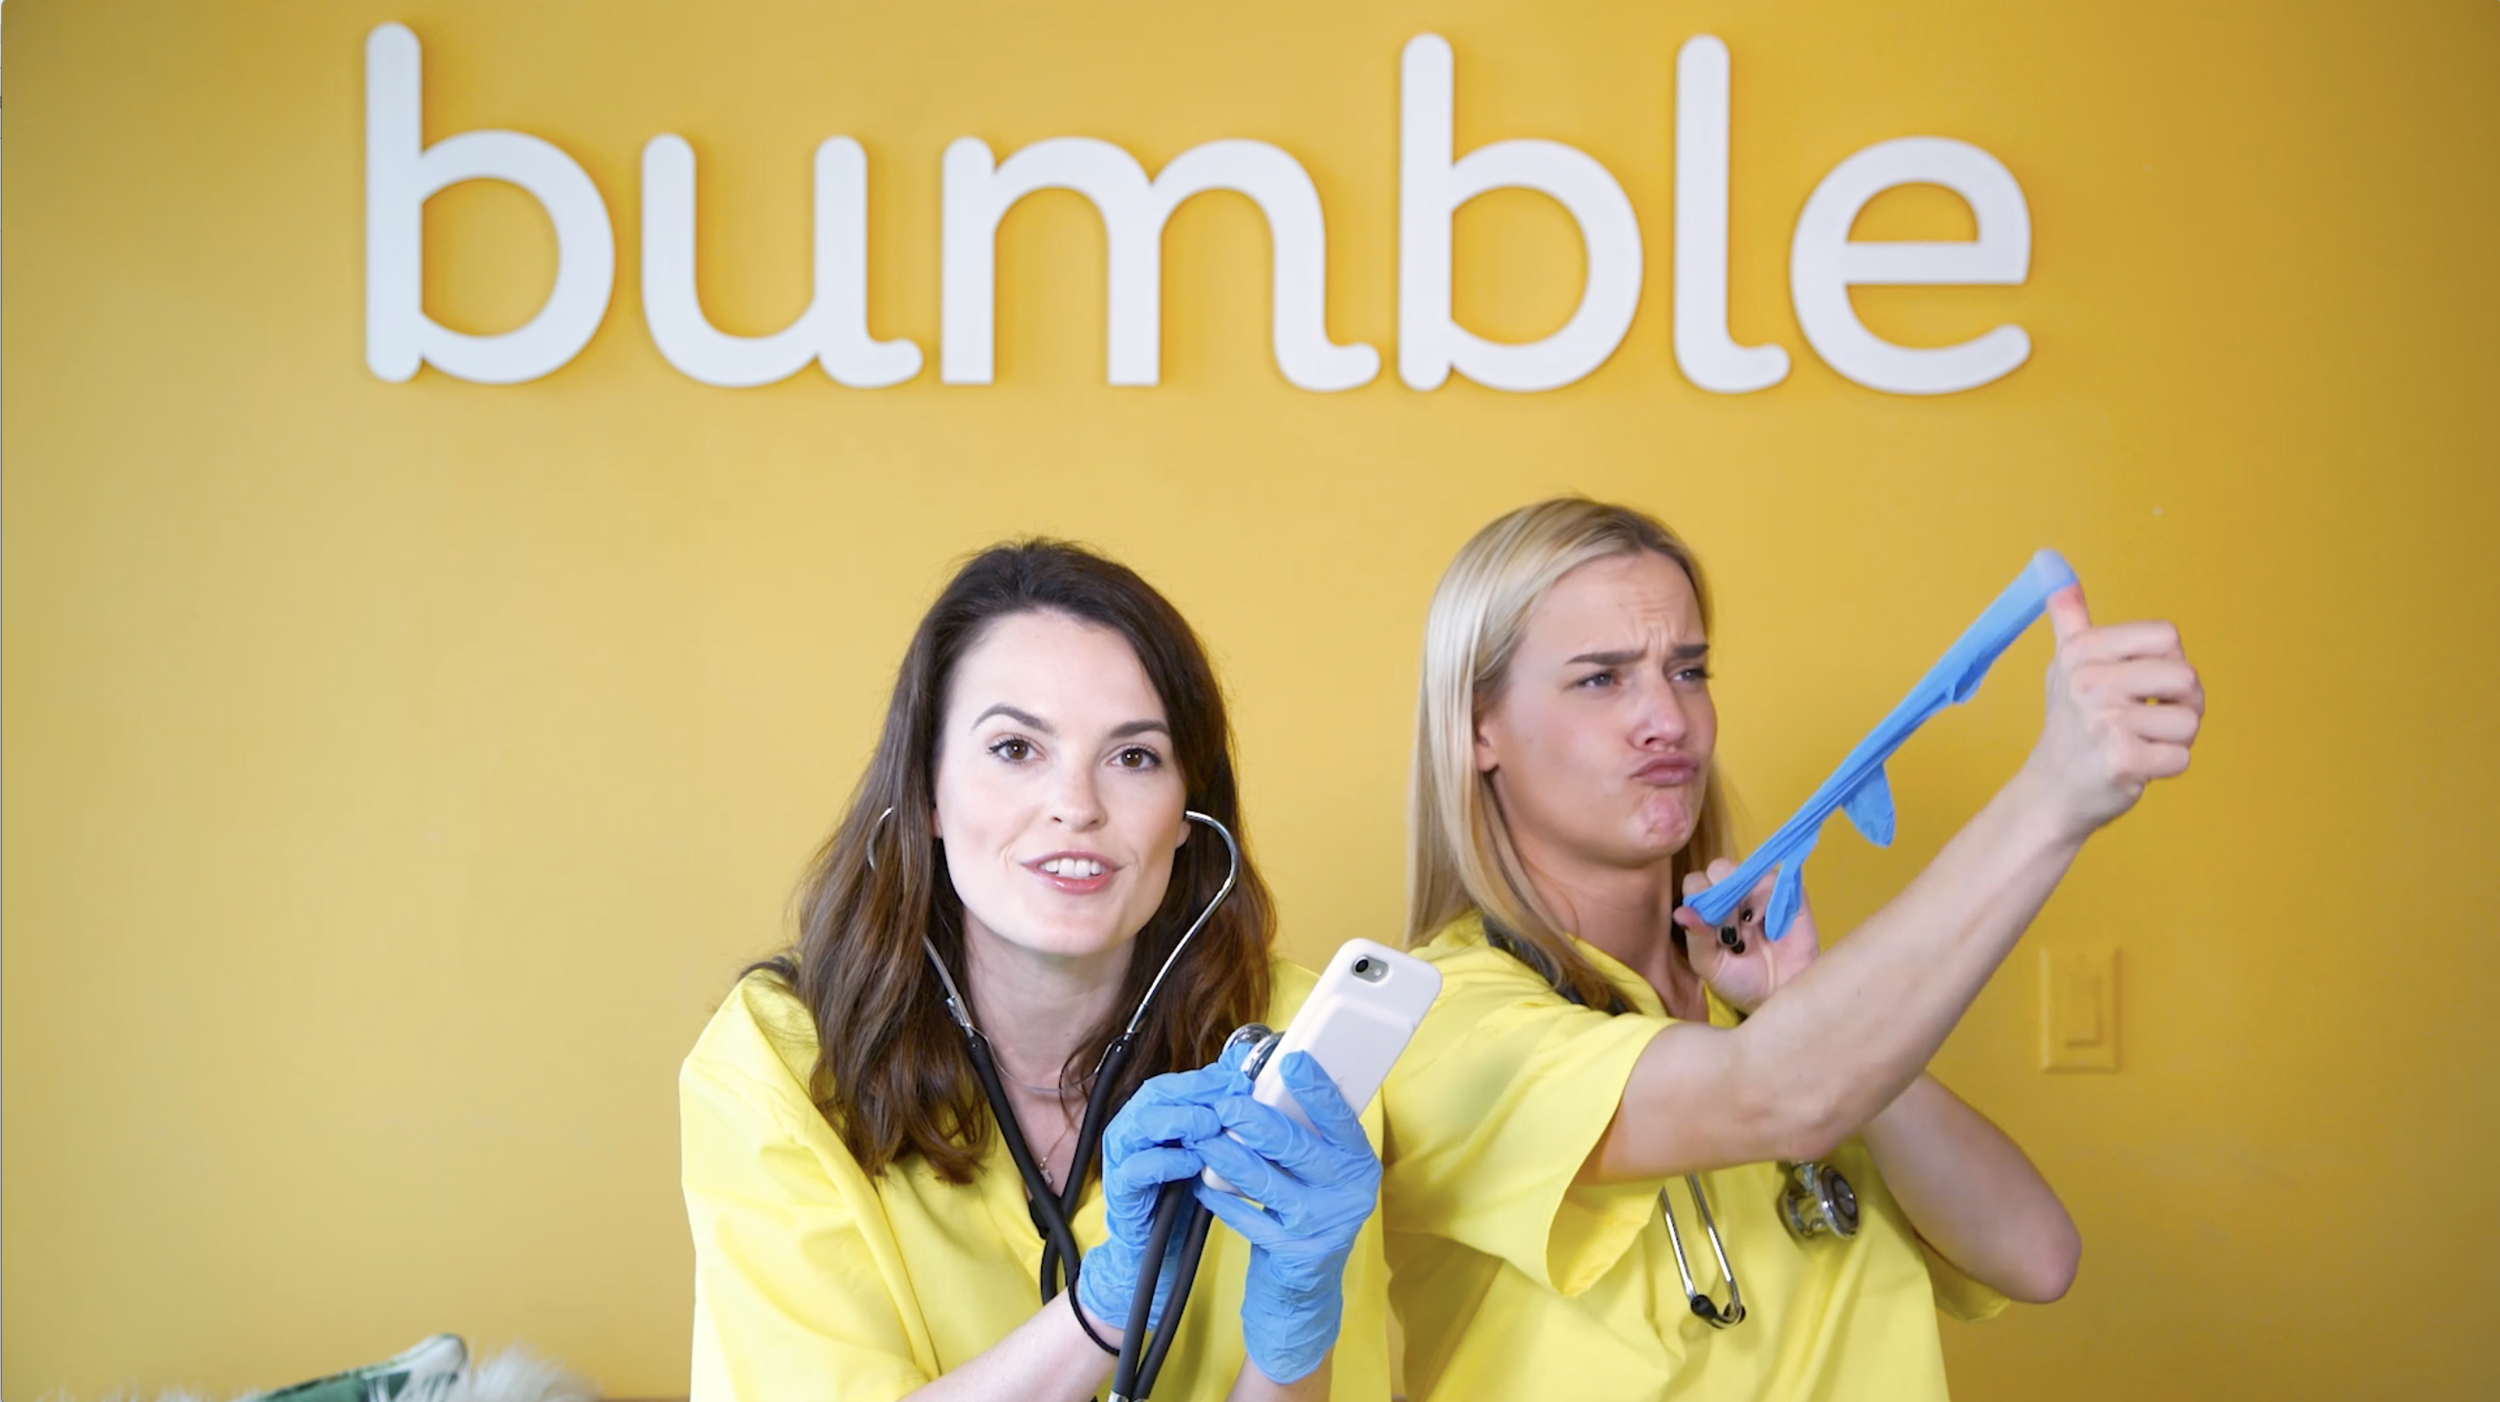 Does your Bumble profile need a checkup? Let Alex and Sam decide.